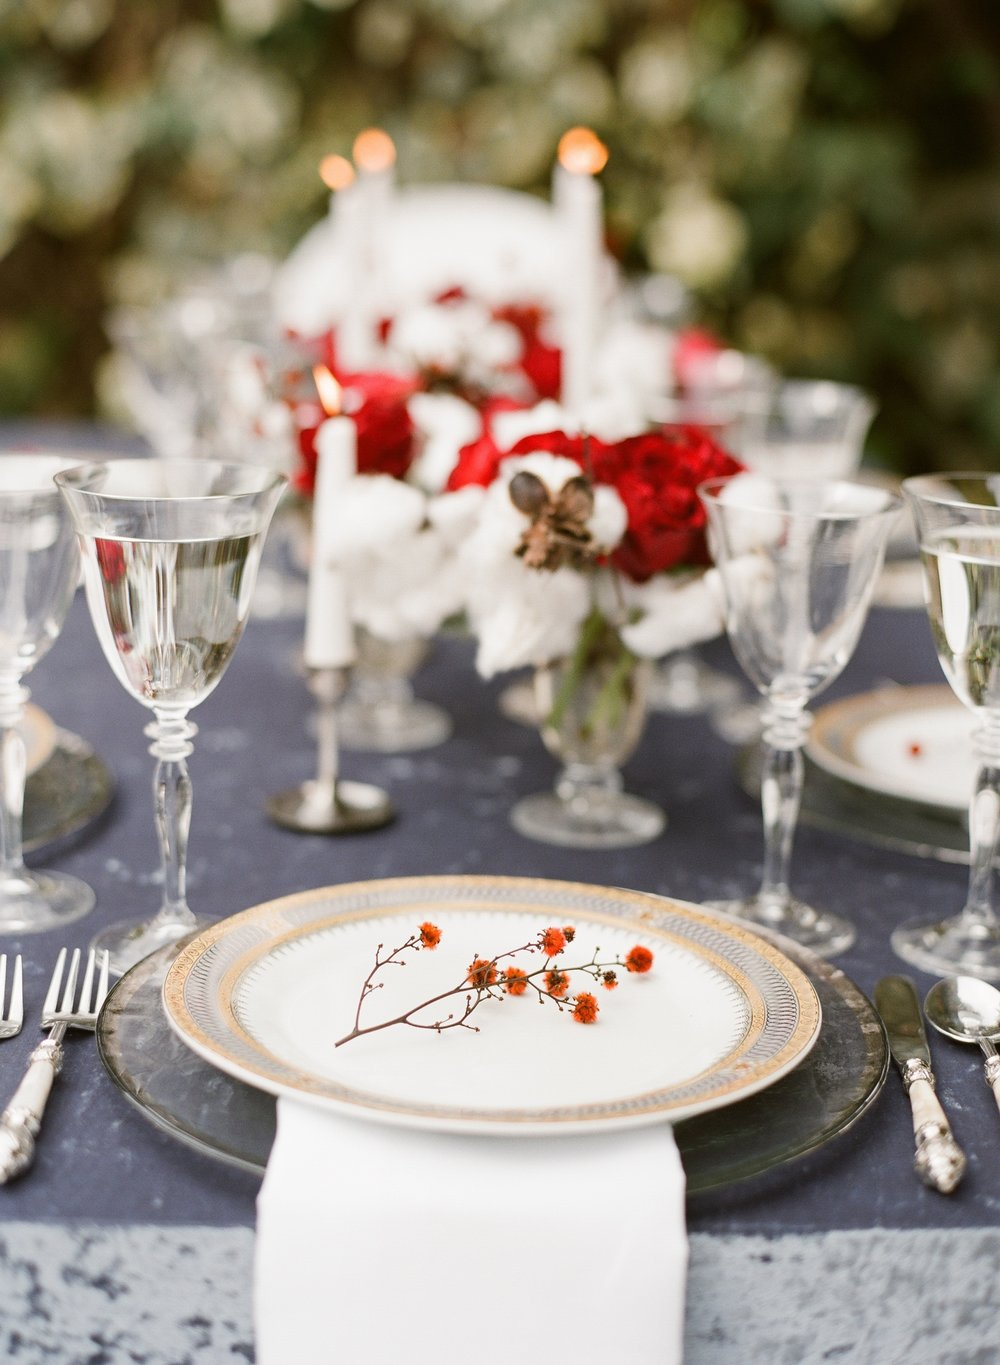 santabarbarawedding.com | Photo: Michael and Anna Costa | Elegant Holiday inspiration